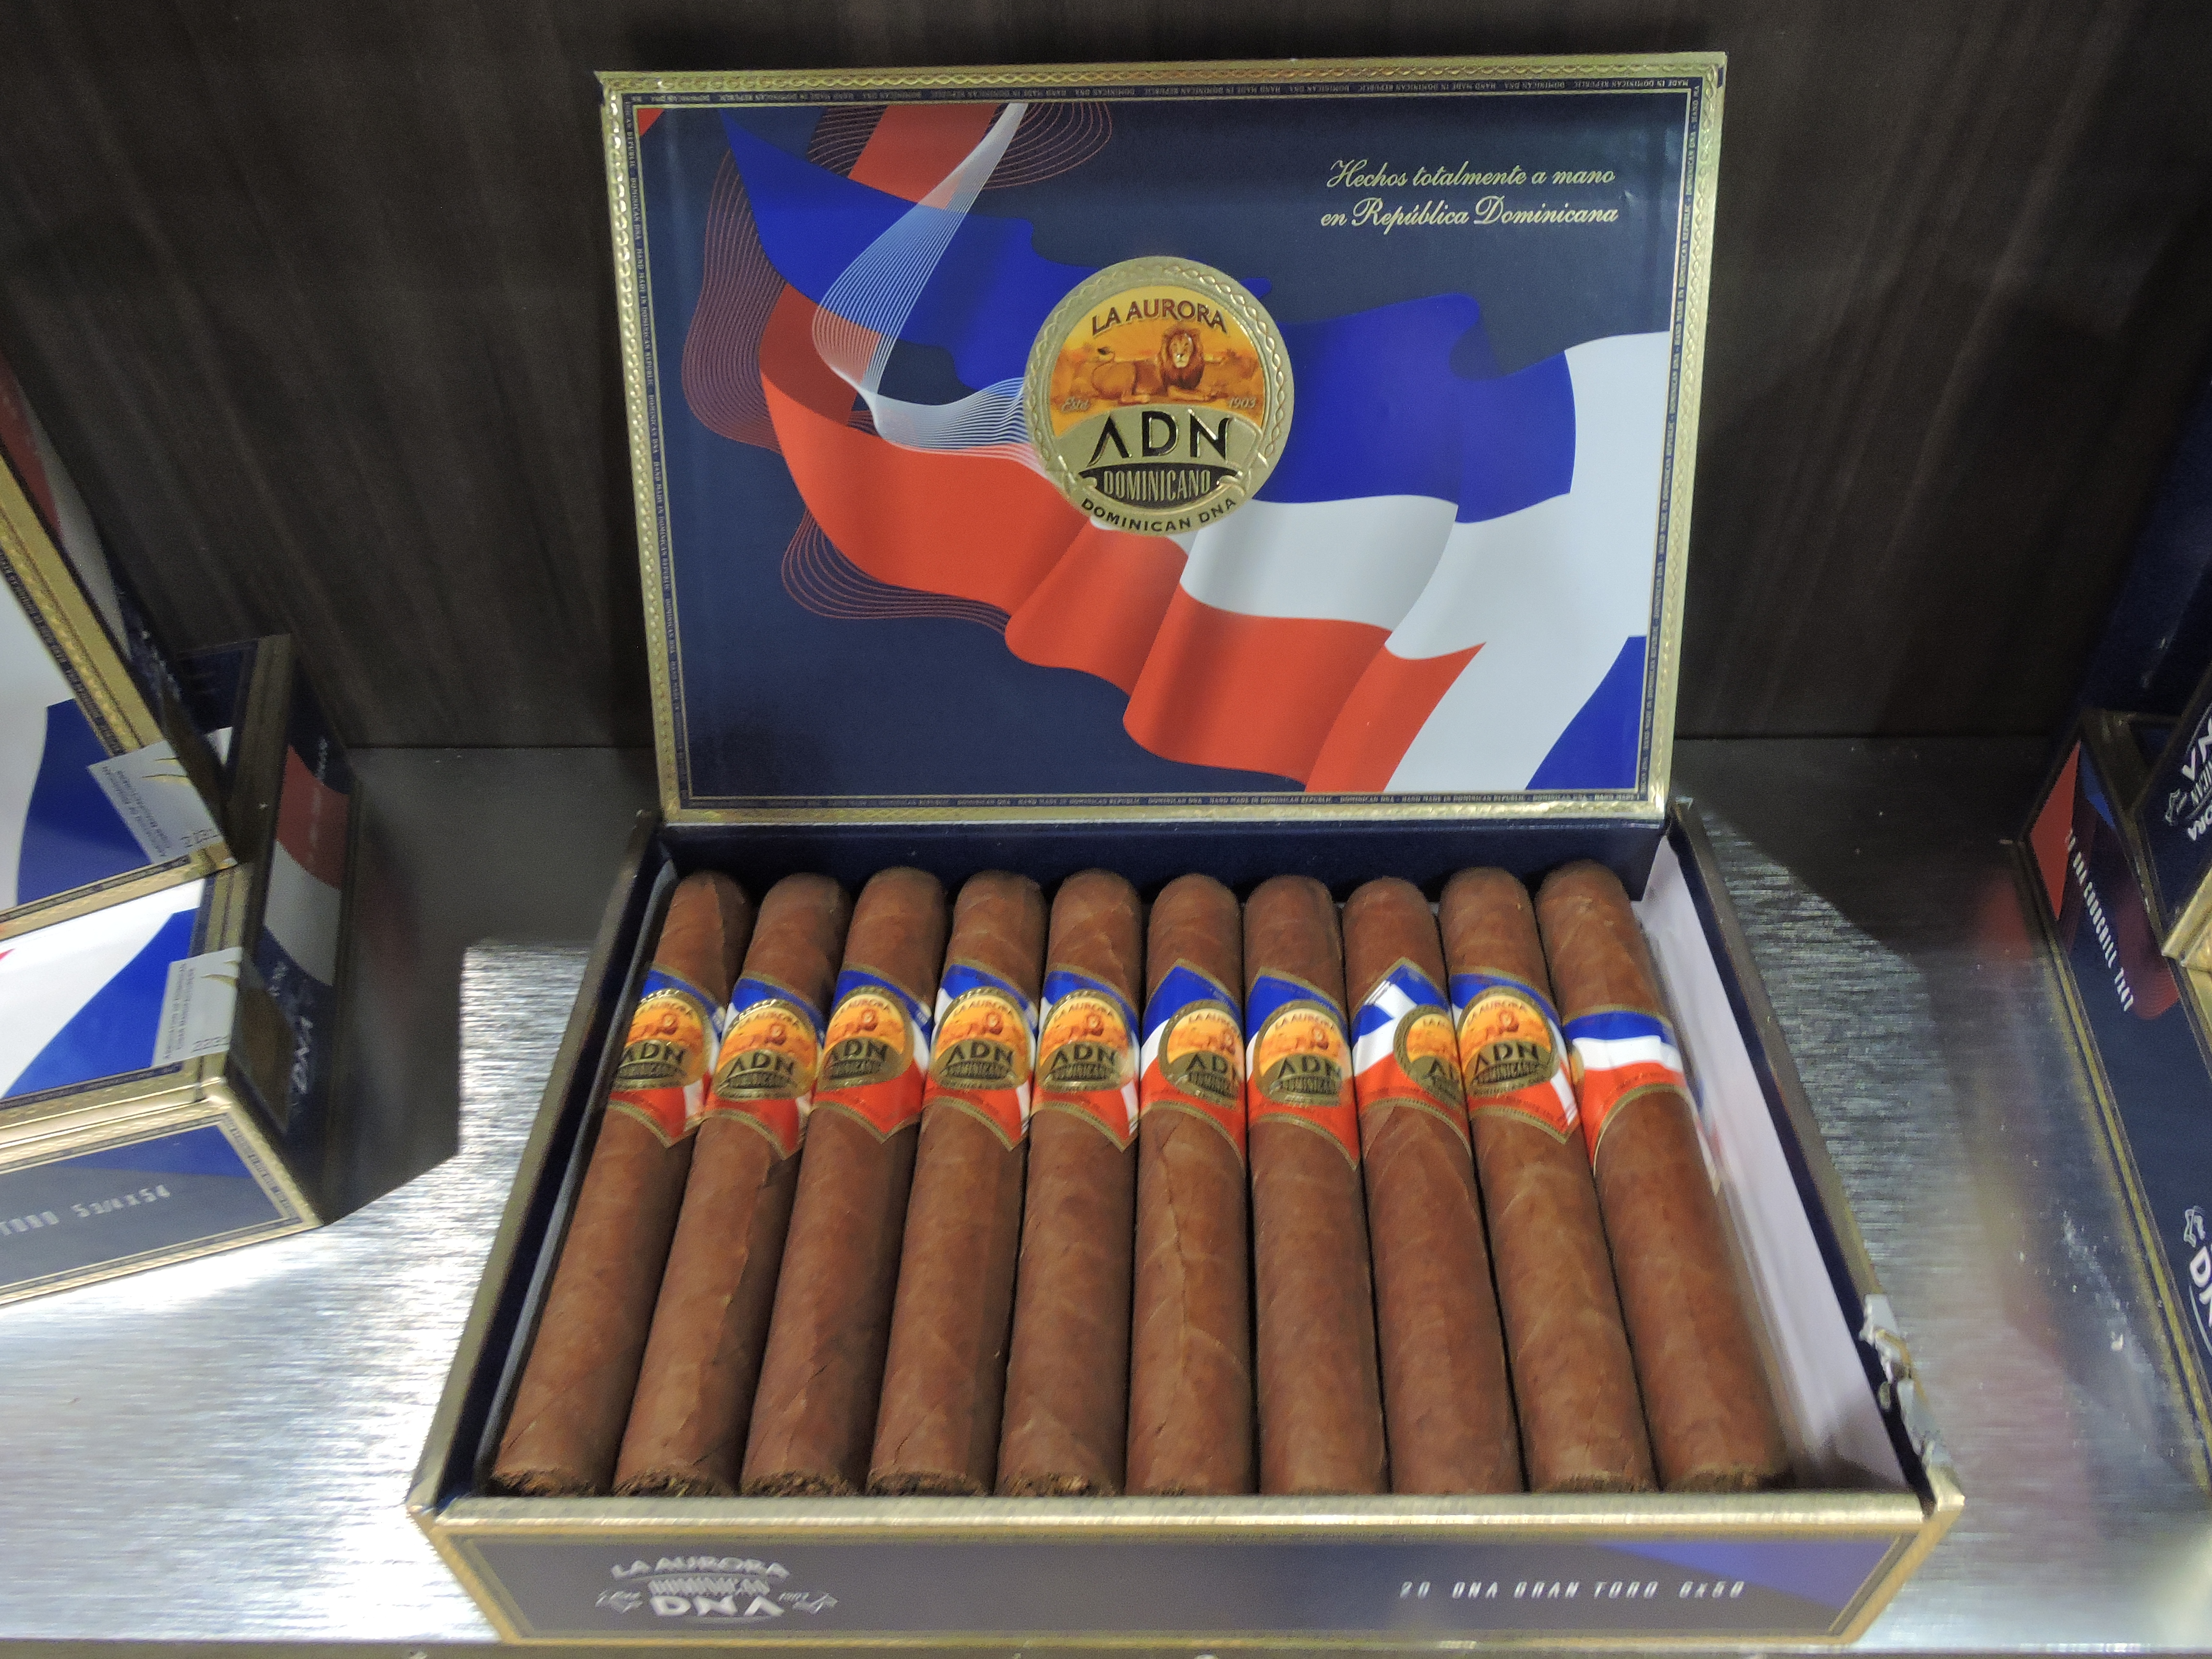 Cigar News: La Aurora ADN Dominicano Officially Launched at 2017 IPCPR